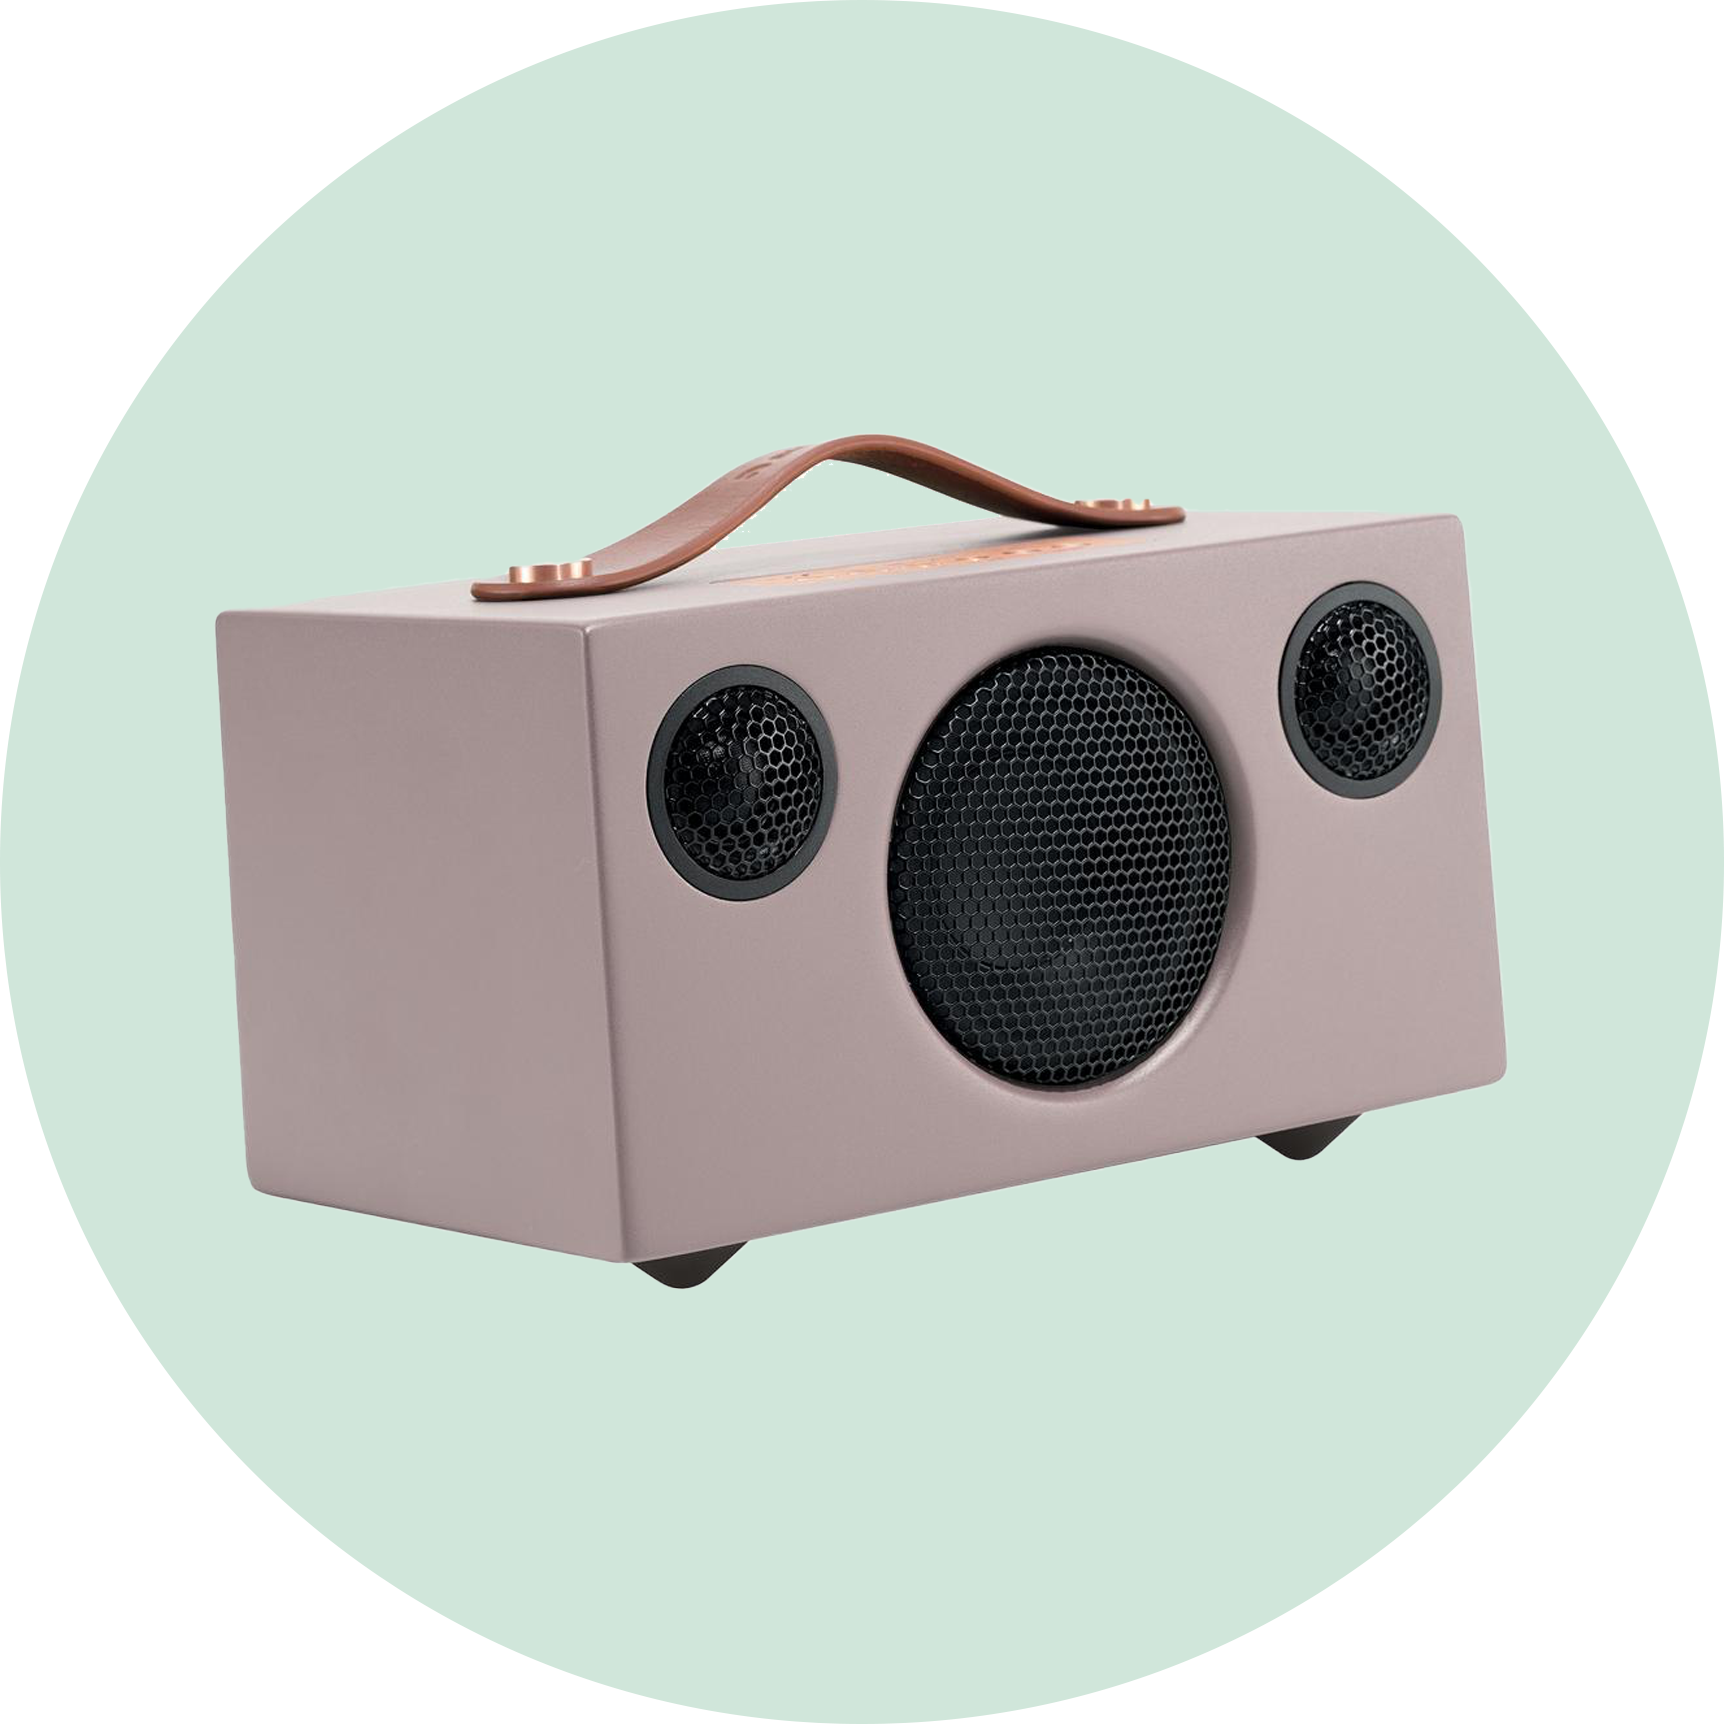 Audio Pro Addon T3 Portable Bluetooth Speaker